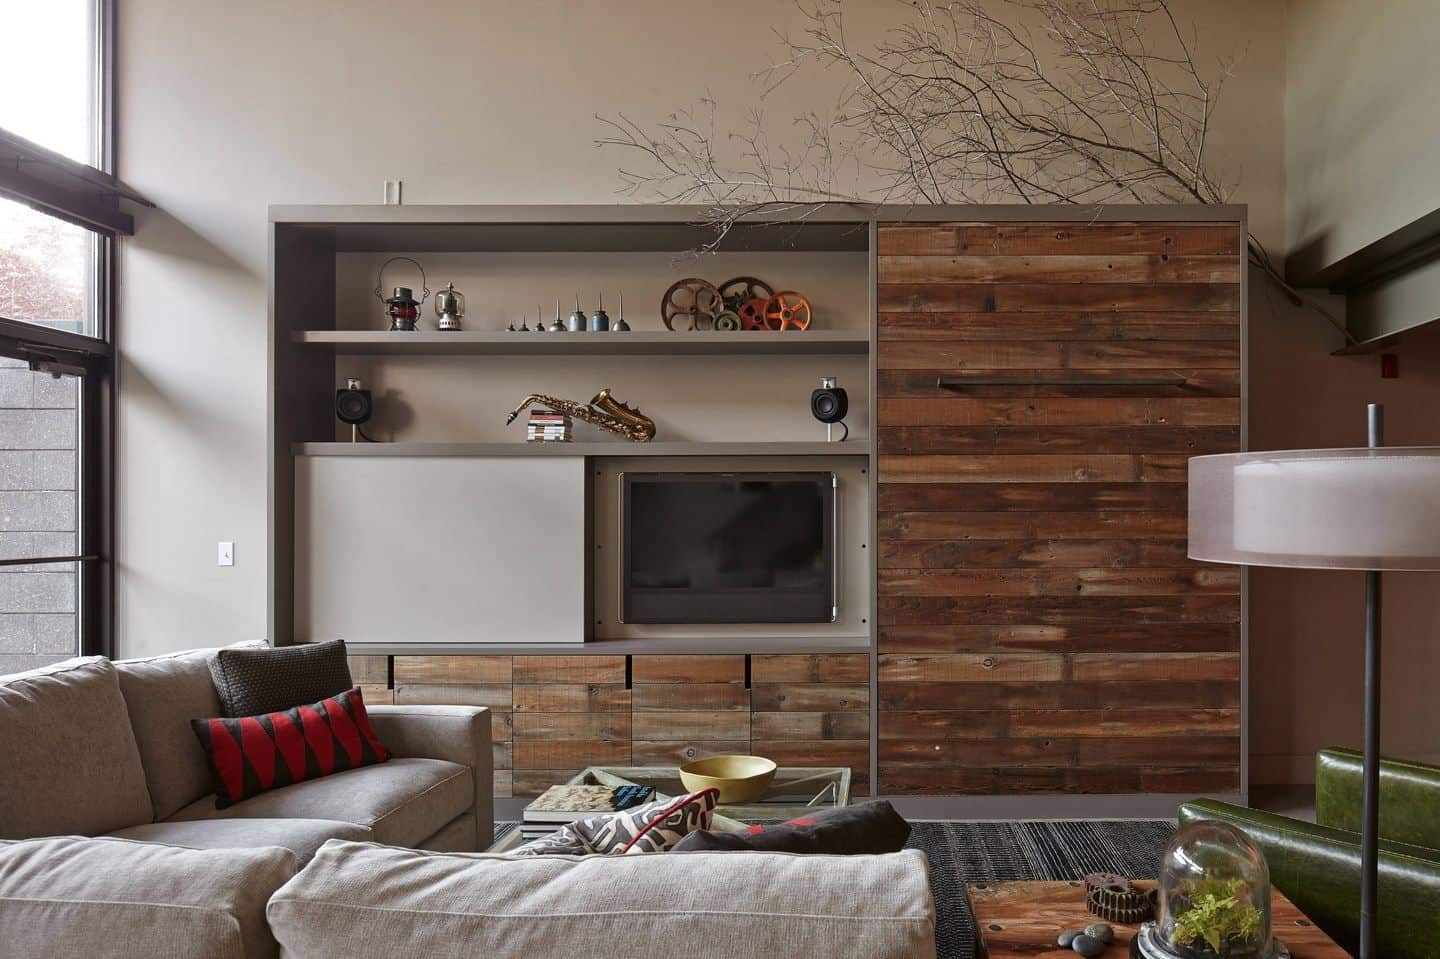 This living room boasts a wood paneled wall fitted with open shelving and television. It has an L-shaped sectional and glass top coffee table that sits on a gray rug.